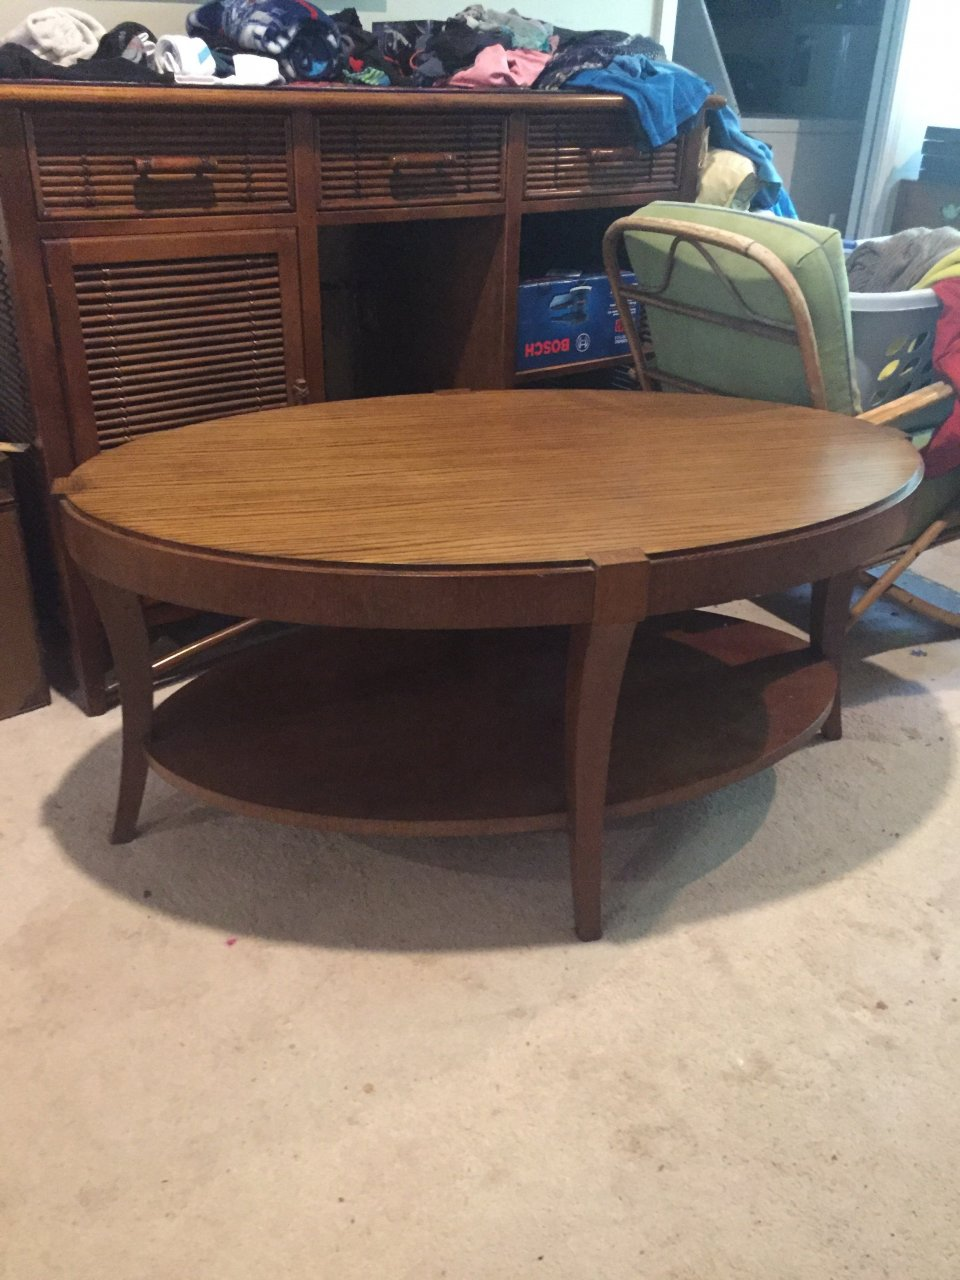 How Much Is This Baker Furniture Coffee Cocktail Table